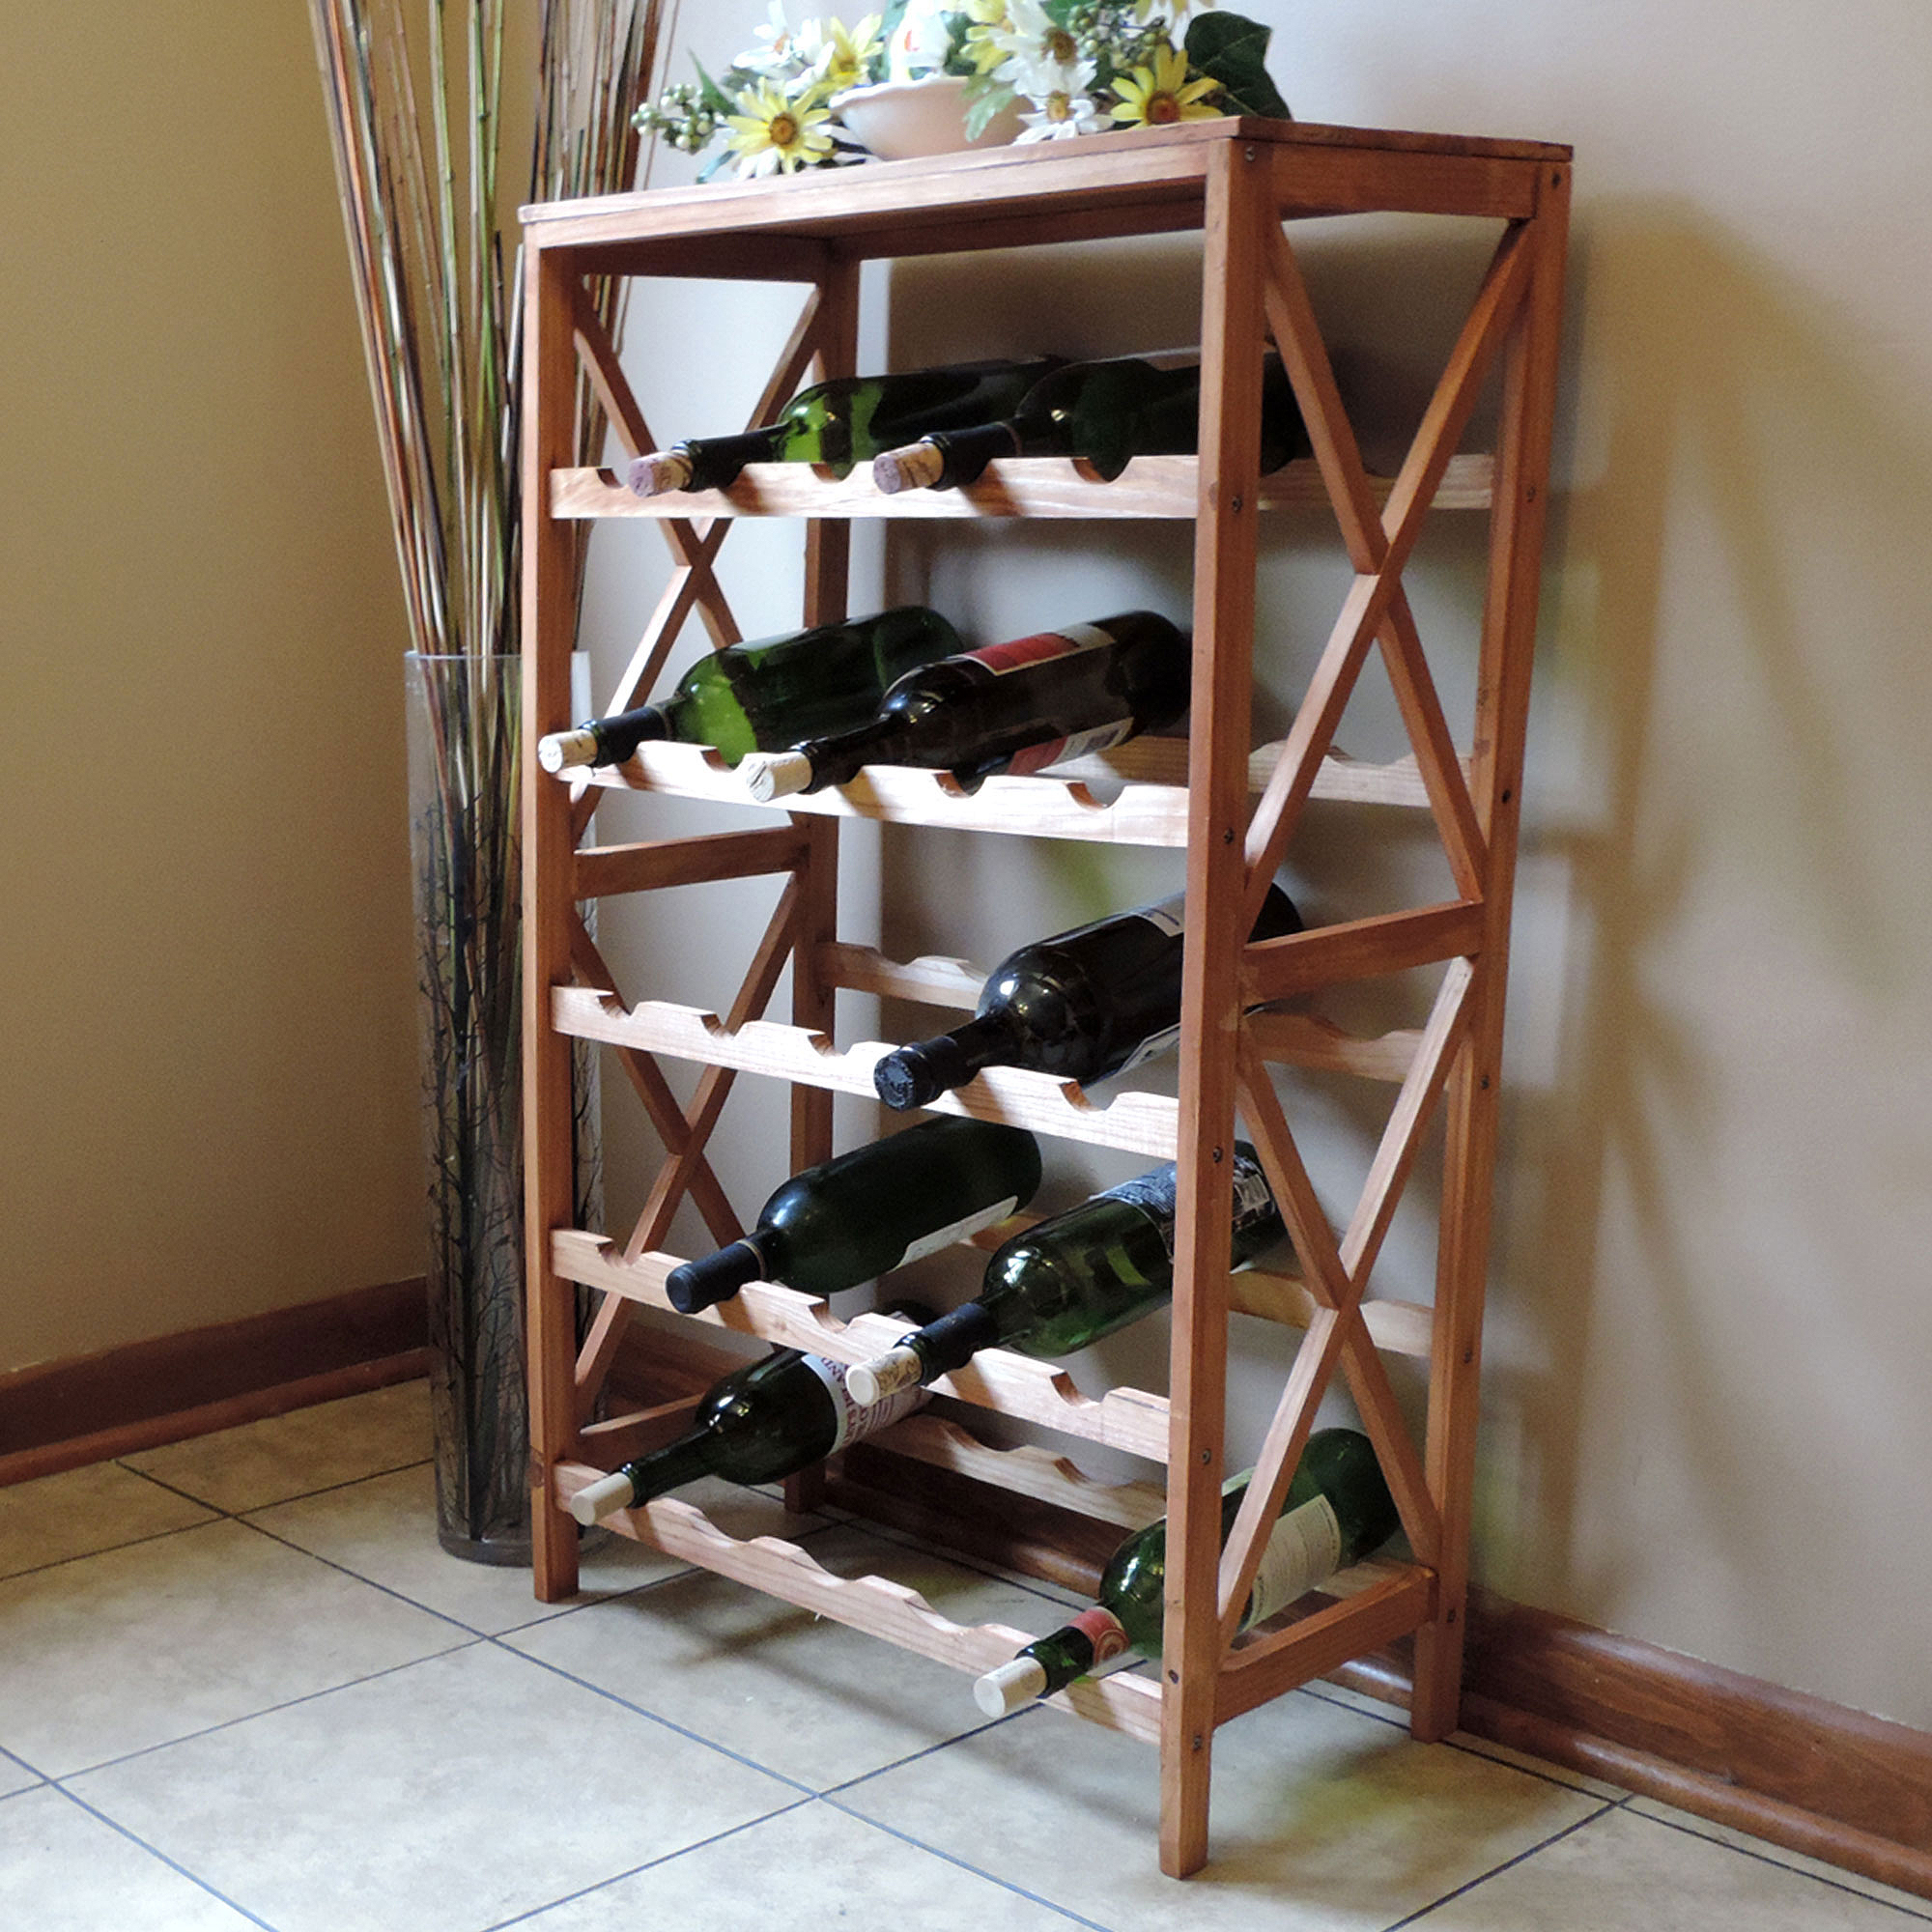 Rustic Wine Rack Space Saving Free Standing Wine Bottle Holder For Kitchen,  Bar, Dining Or Living Rooms  Classic Storage Shelf By Lavish Home    Walmart.com